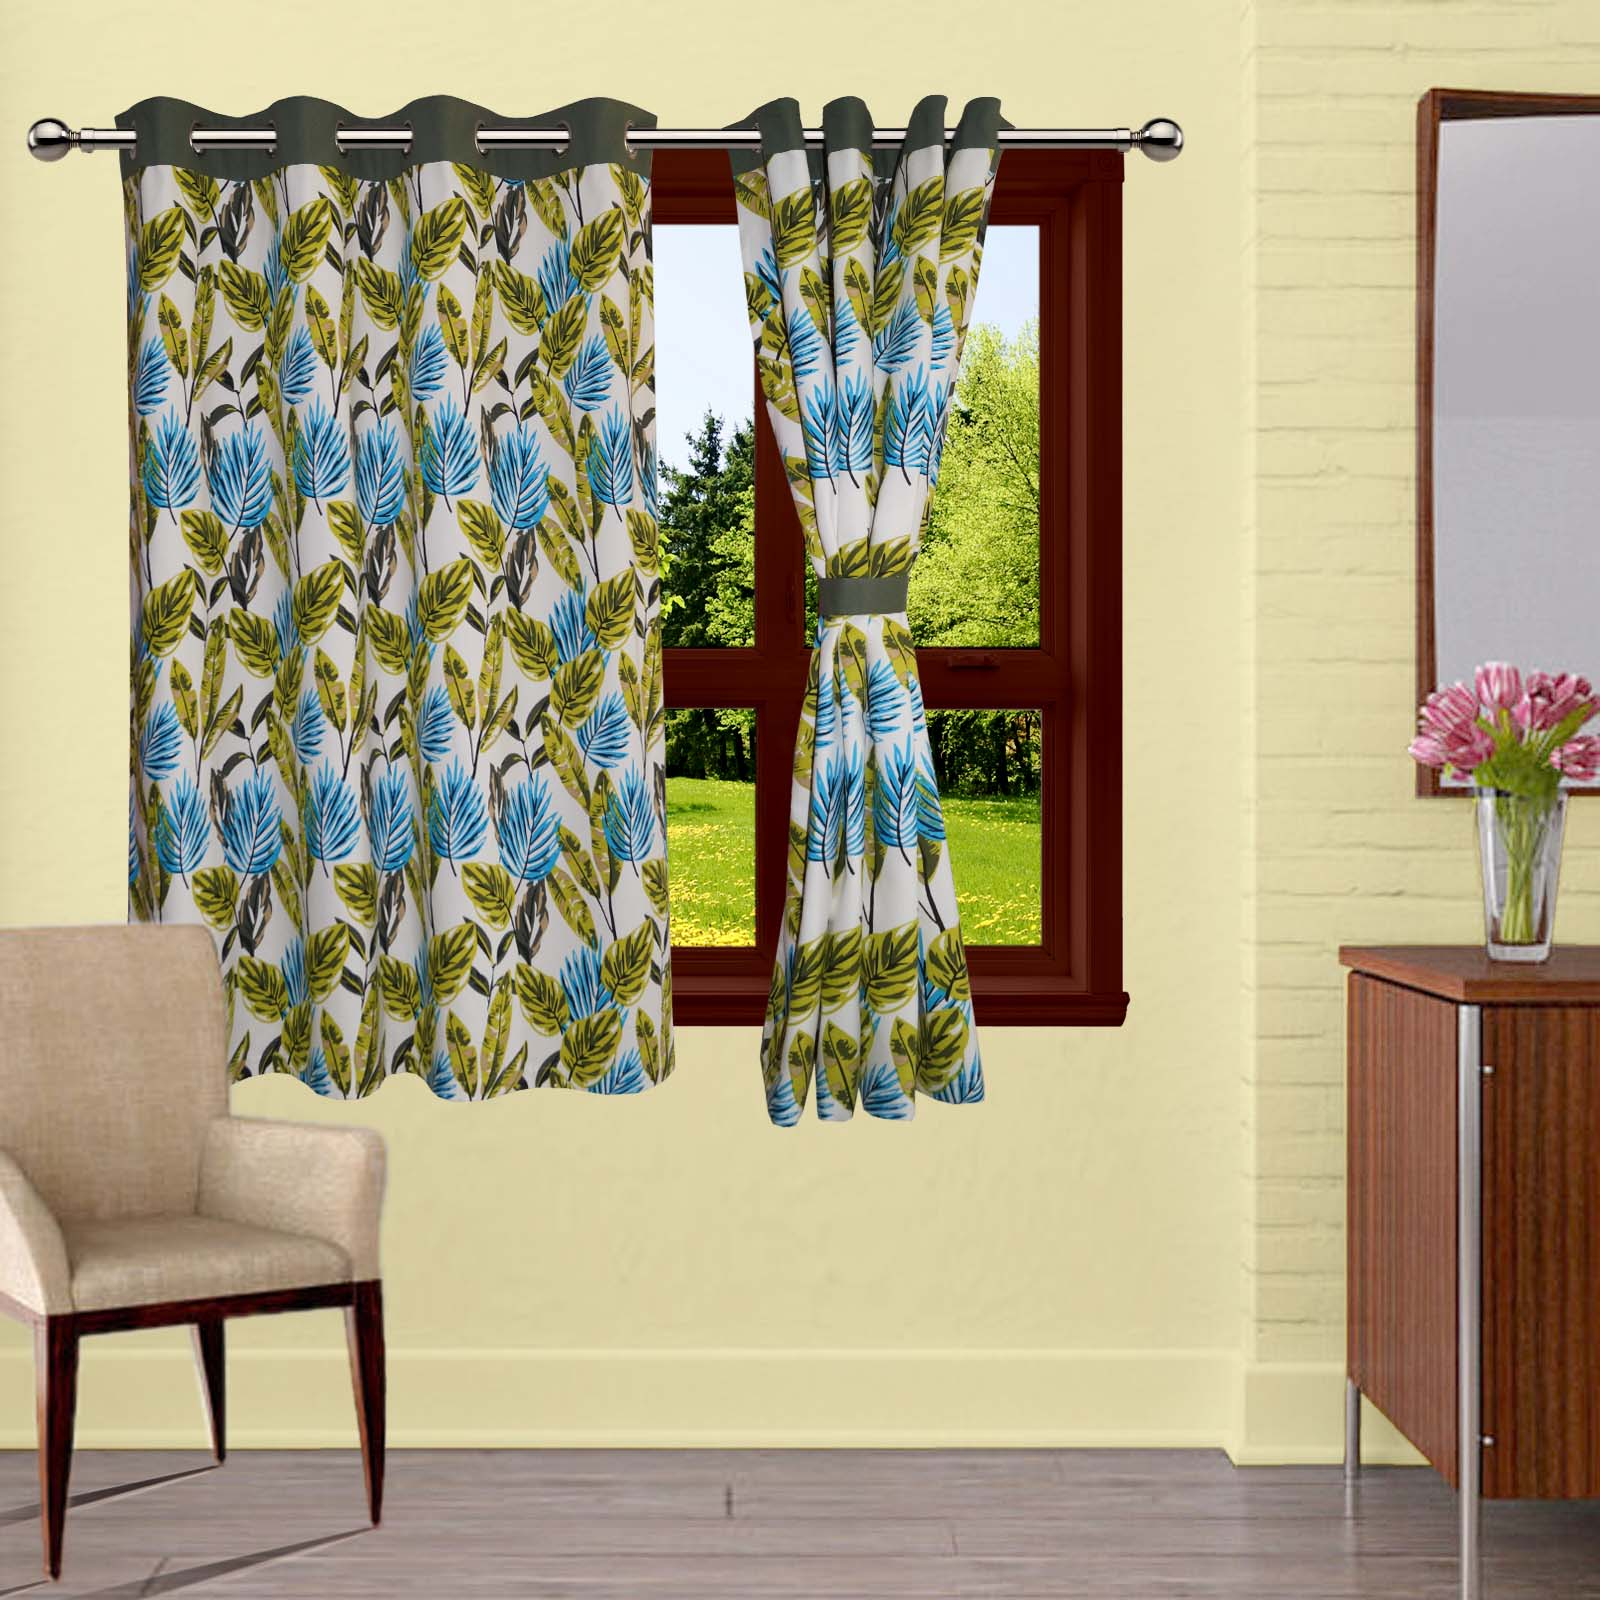 Lushomes Forest Printed Cotton Curtains with 8 Eyelets & Plain Tiebacks for Windows (Single Pc)